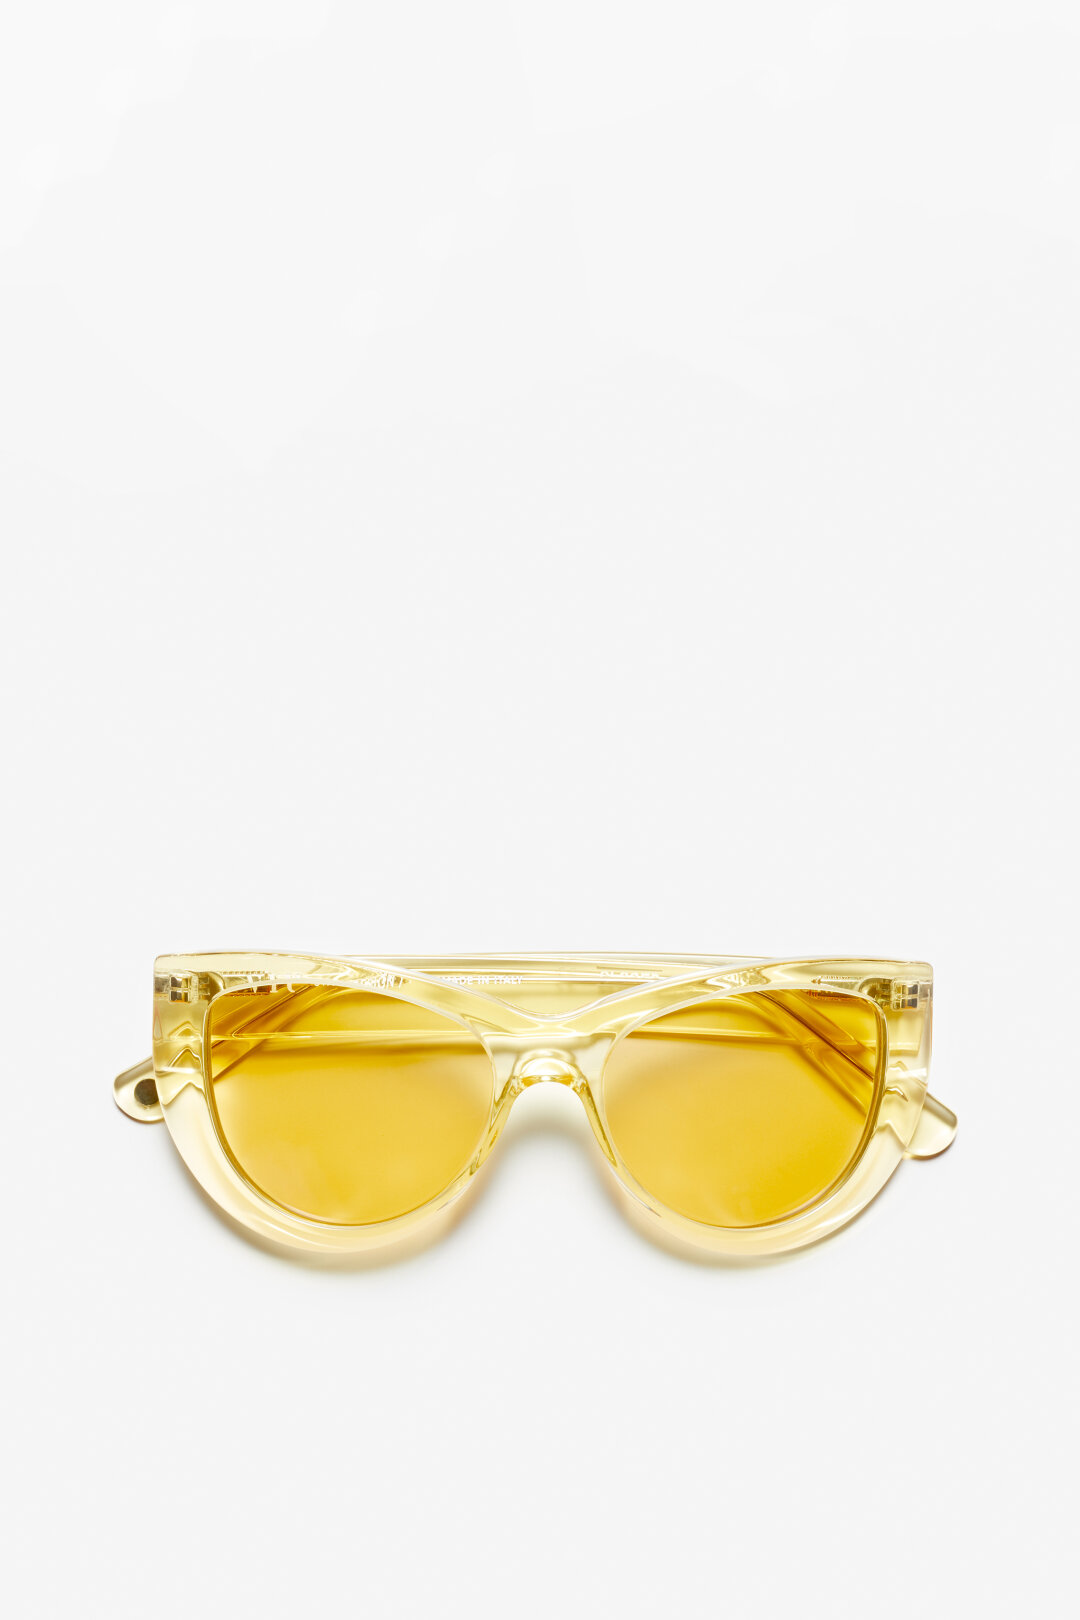 Closed x VIU Sonnenbrille THE OPTIMISTE